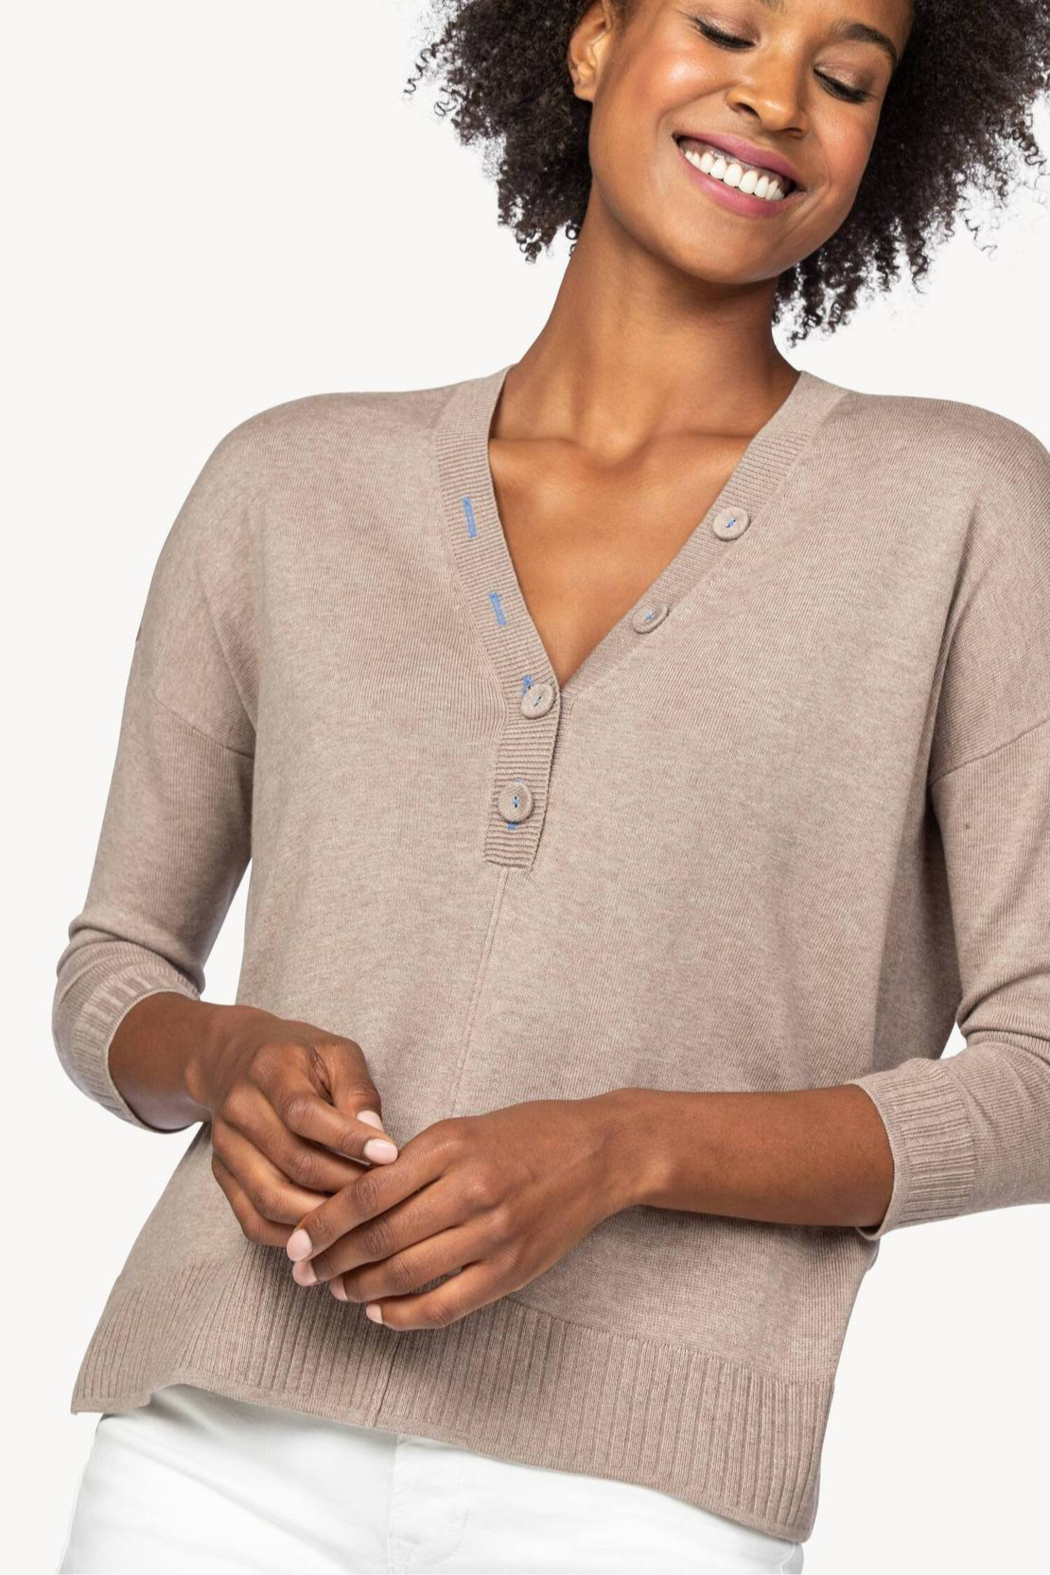 Lilla P PA1381 - Oversized Button Henley Sweater - Front Full Image